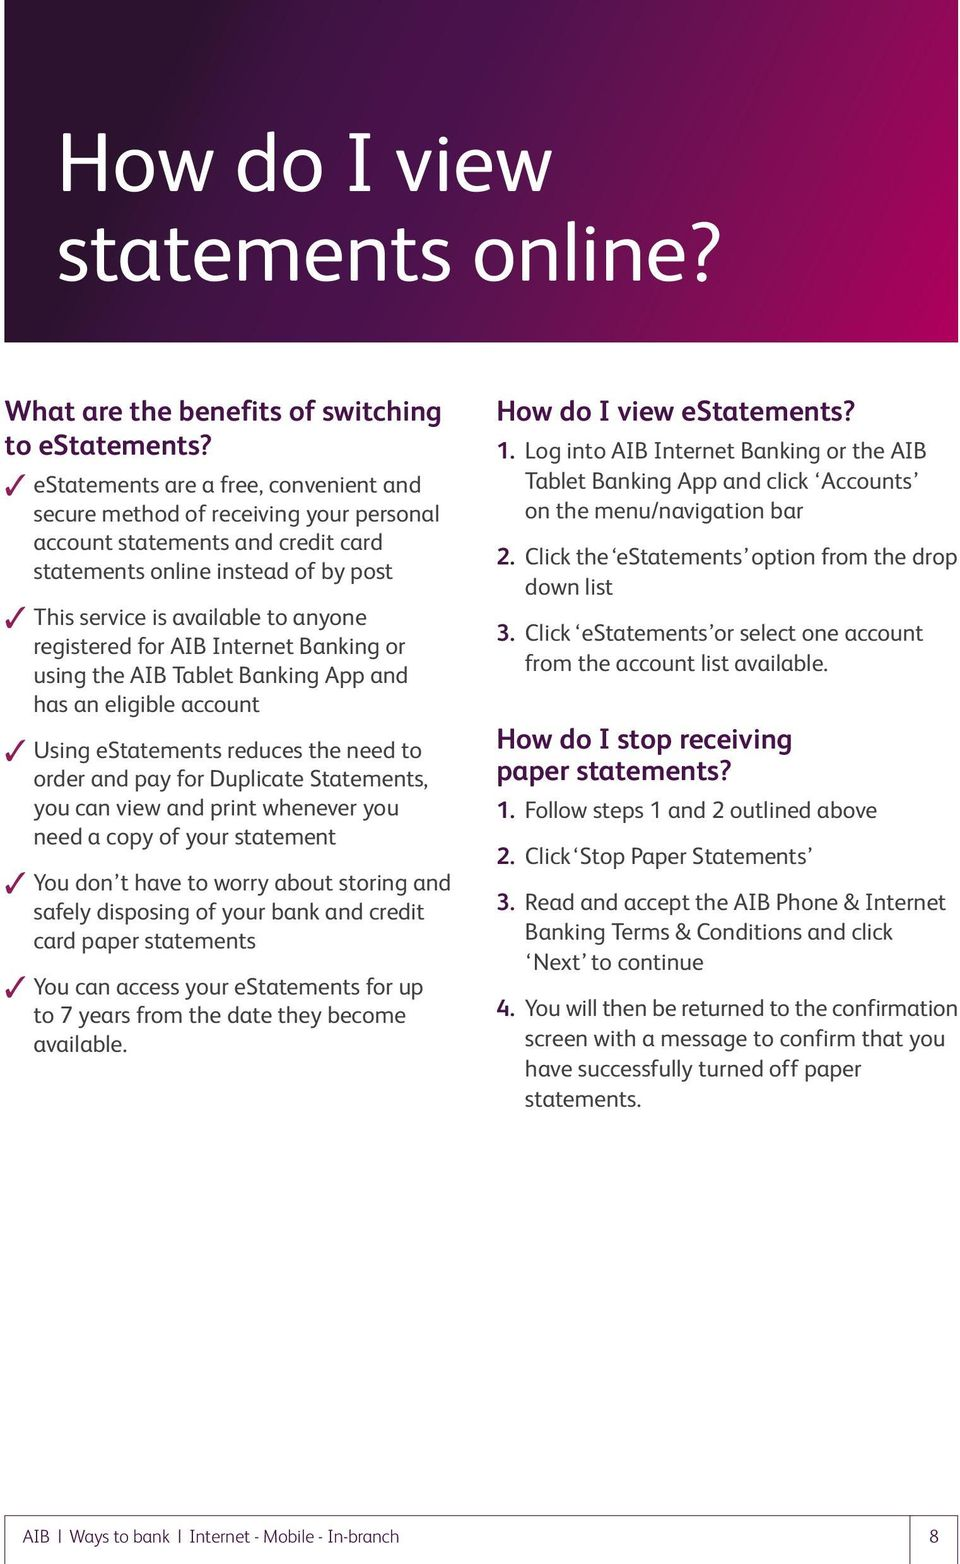 Your money 247 access with aib pdf for aib internet banking or using the aib tablet banking app and has an eligible account reheart Gallery